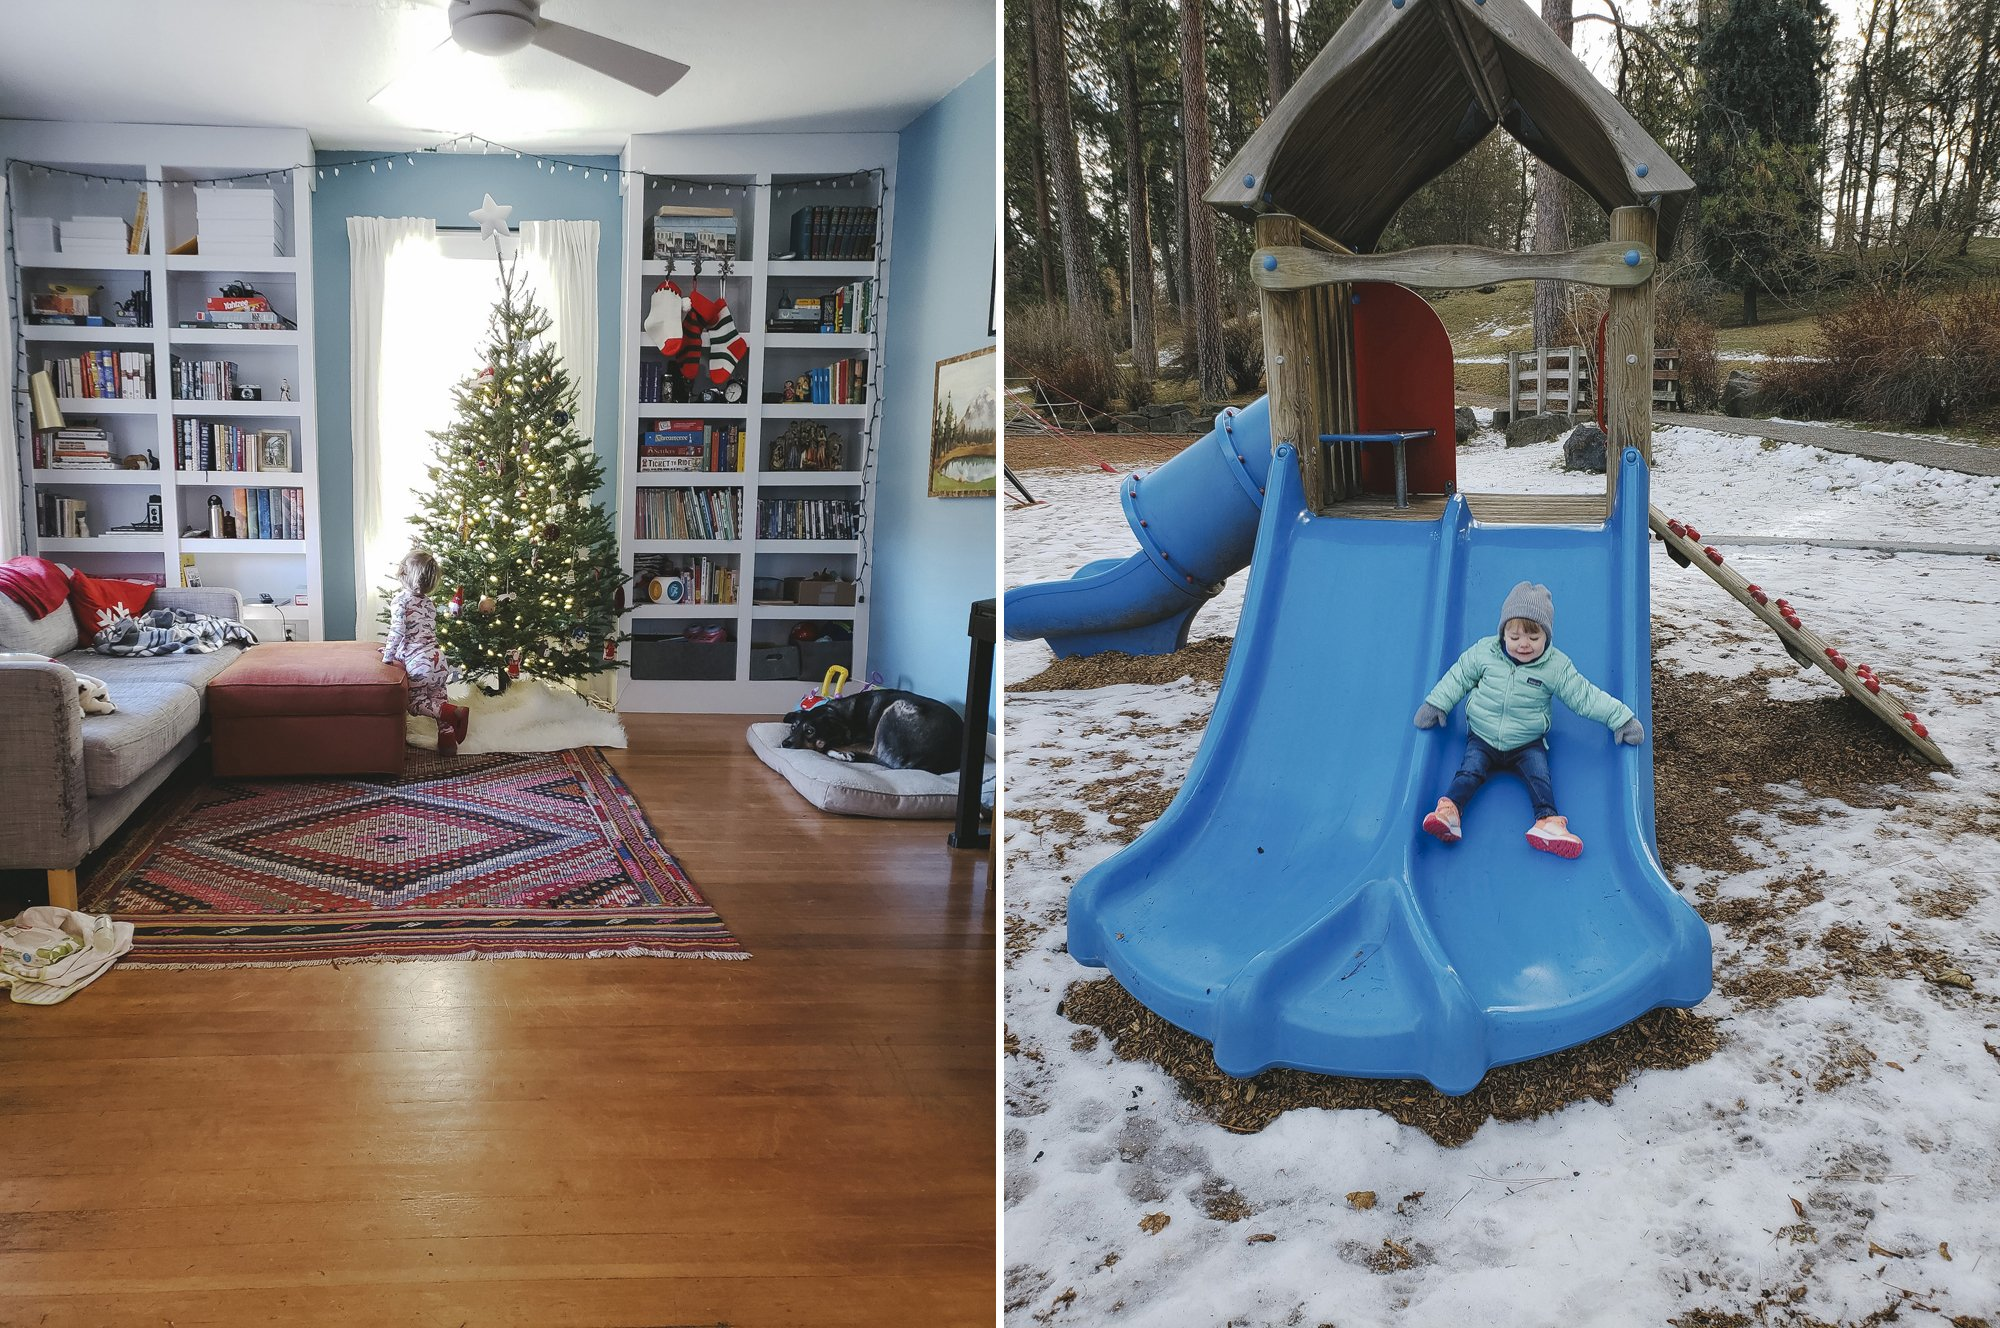 Simple Christmas Decor and Outdoor Fun in the Snow